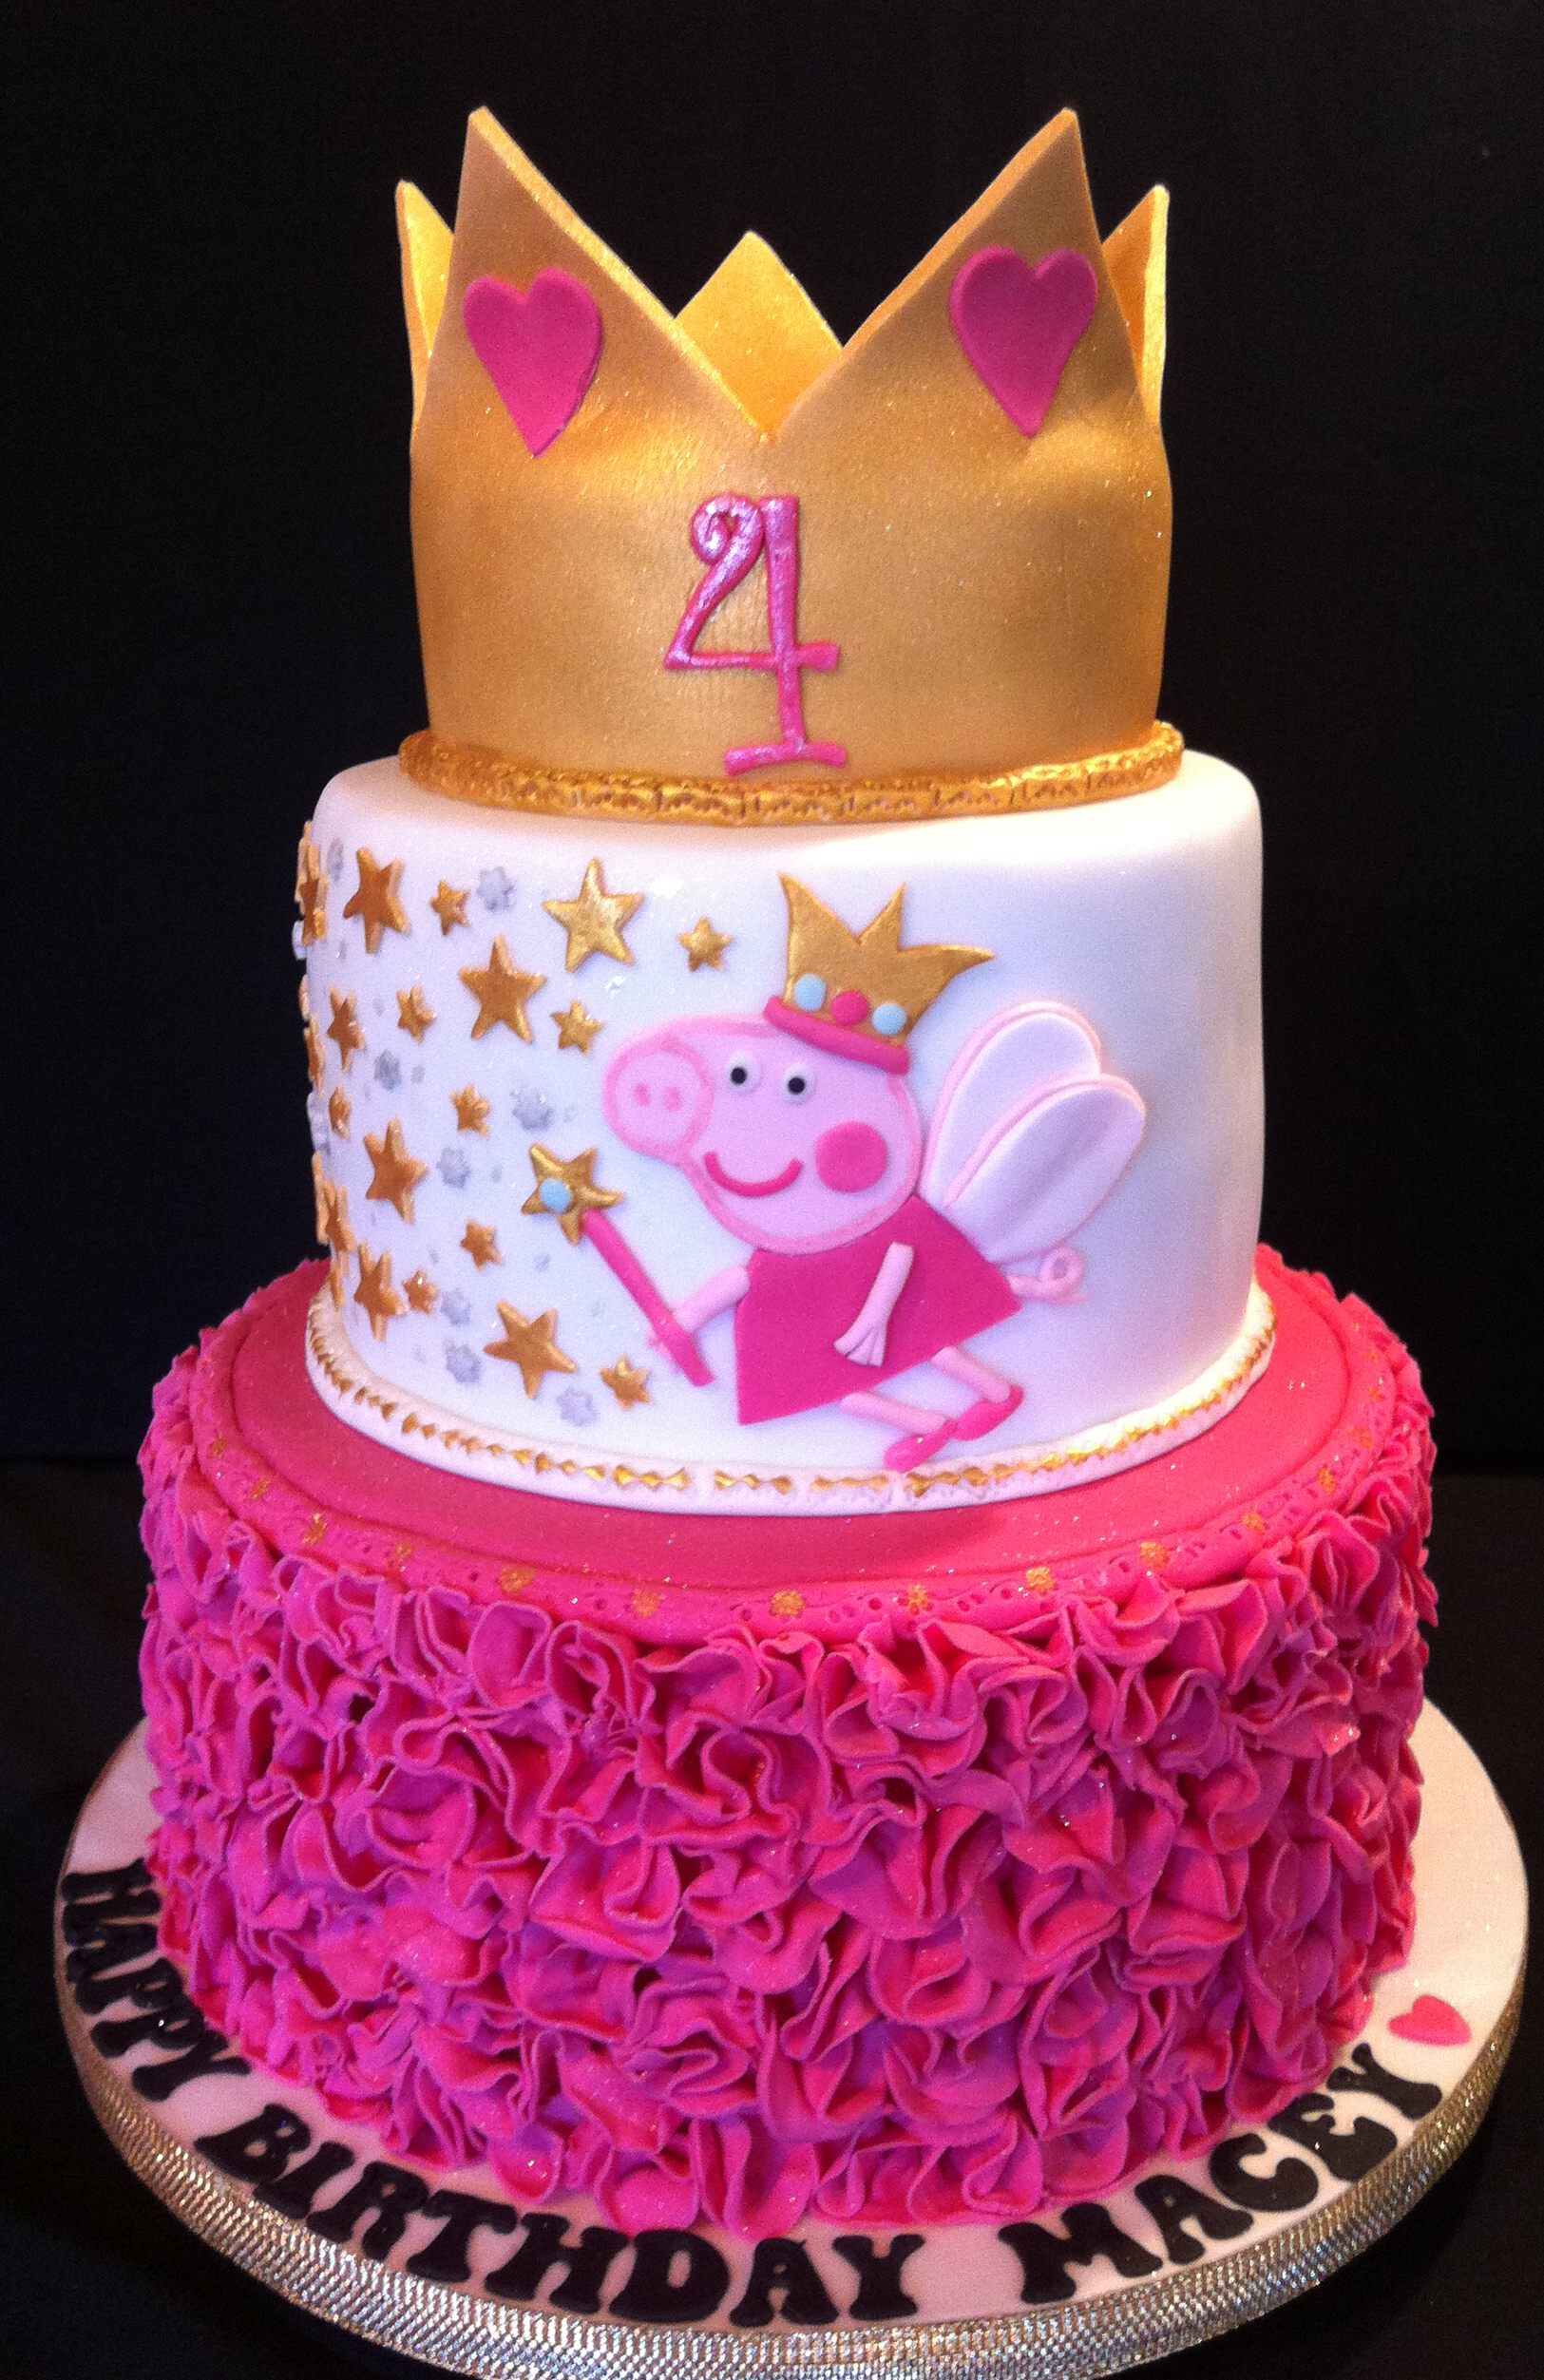 Peppa Pig Birthday Cake Peppa Pig Princess Cake Brelynn 4 Pinterest Pig Birthday Pig